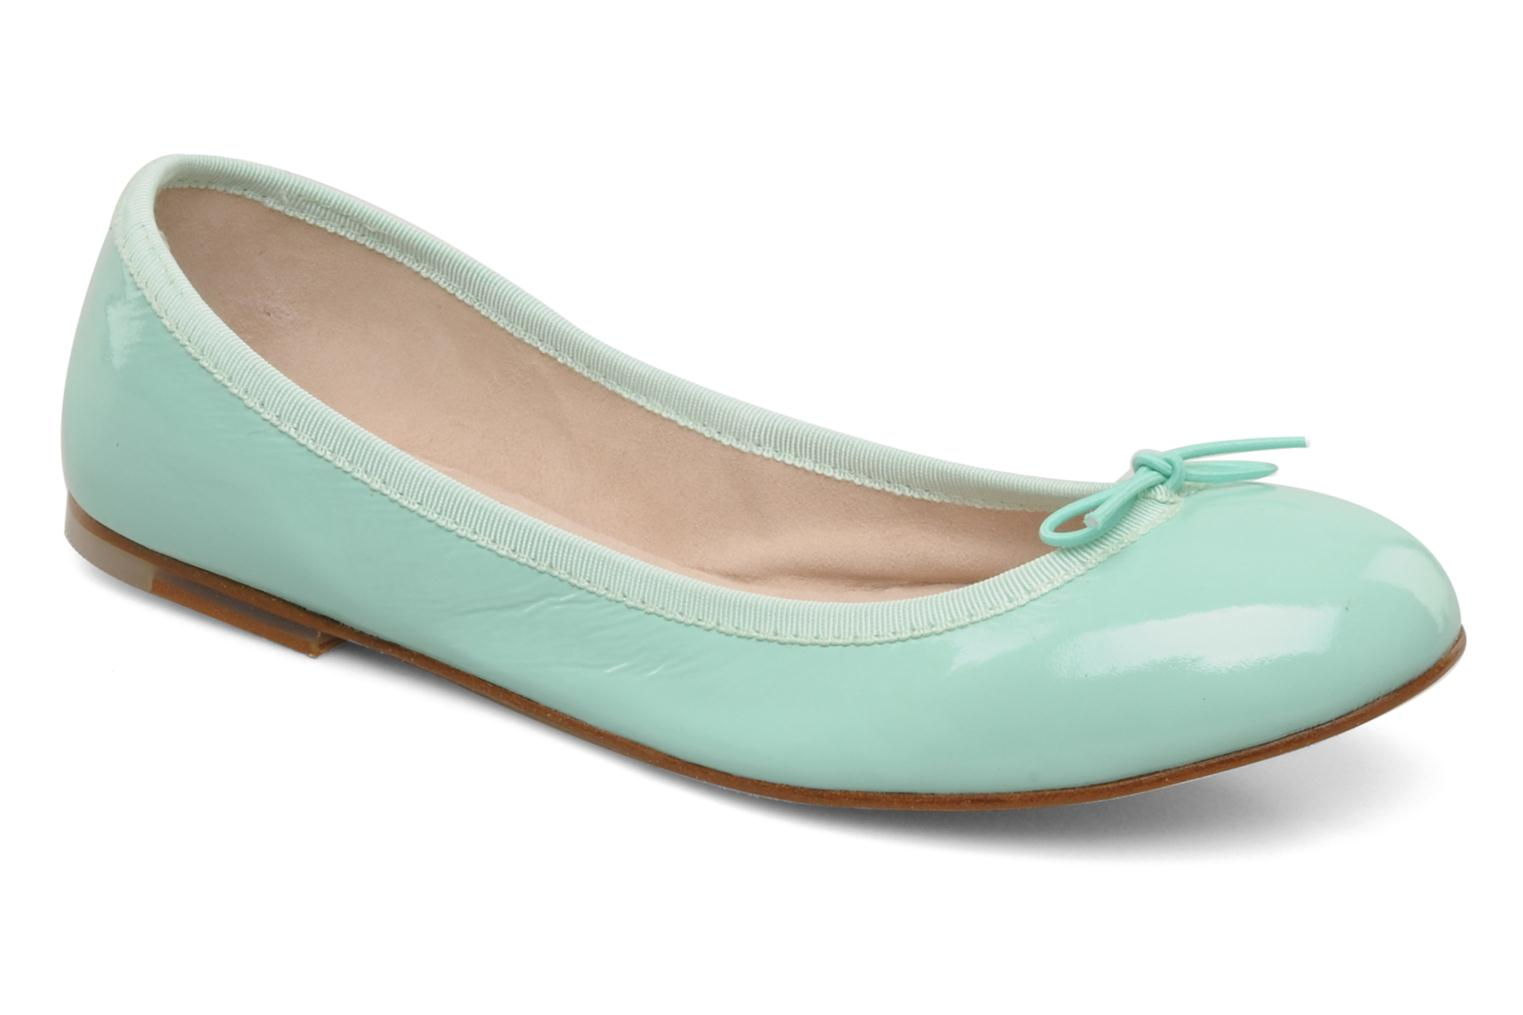 Patent ballerina BEACH GLASS (TURQUOISE CLAIR)